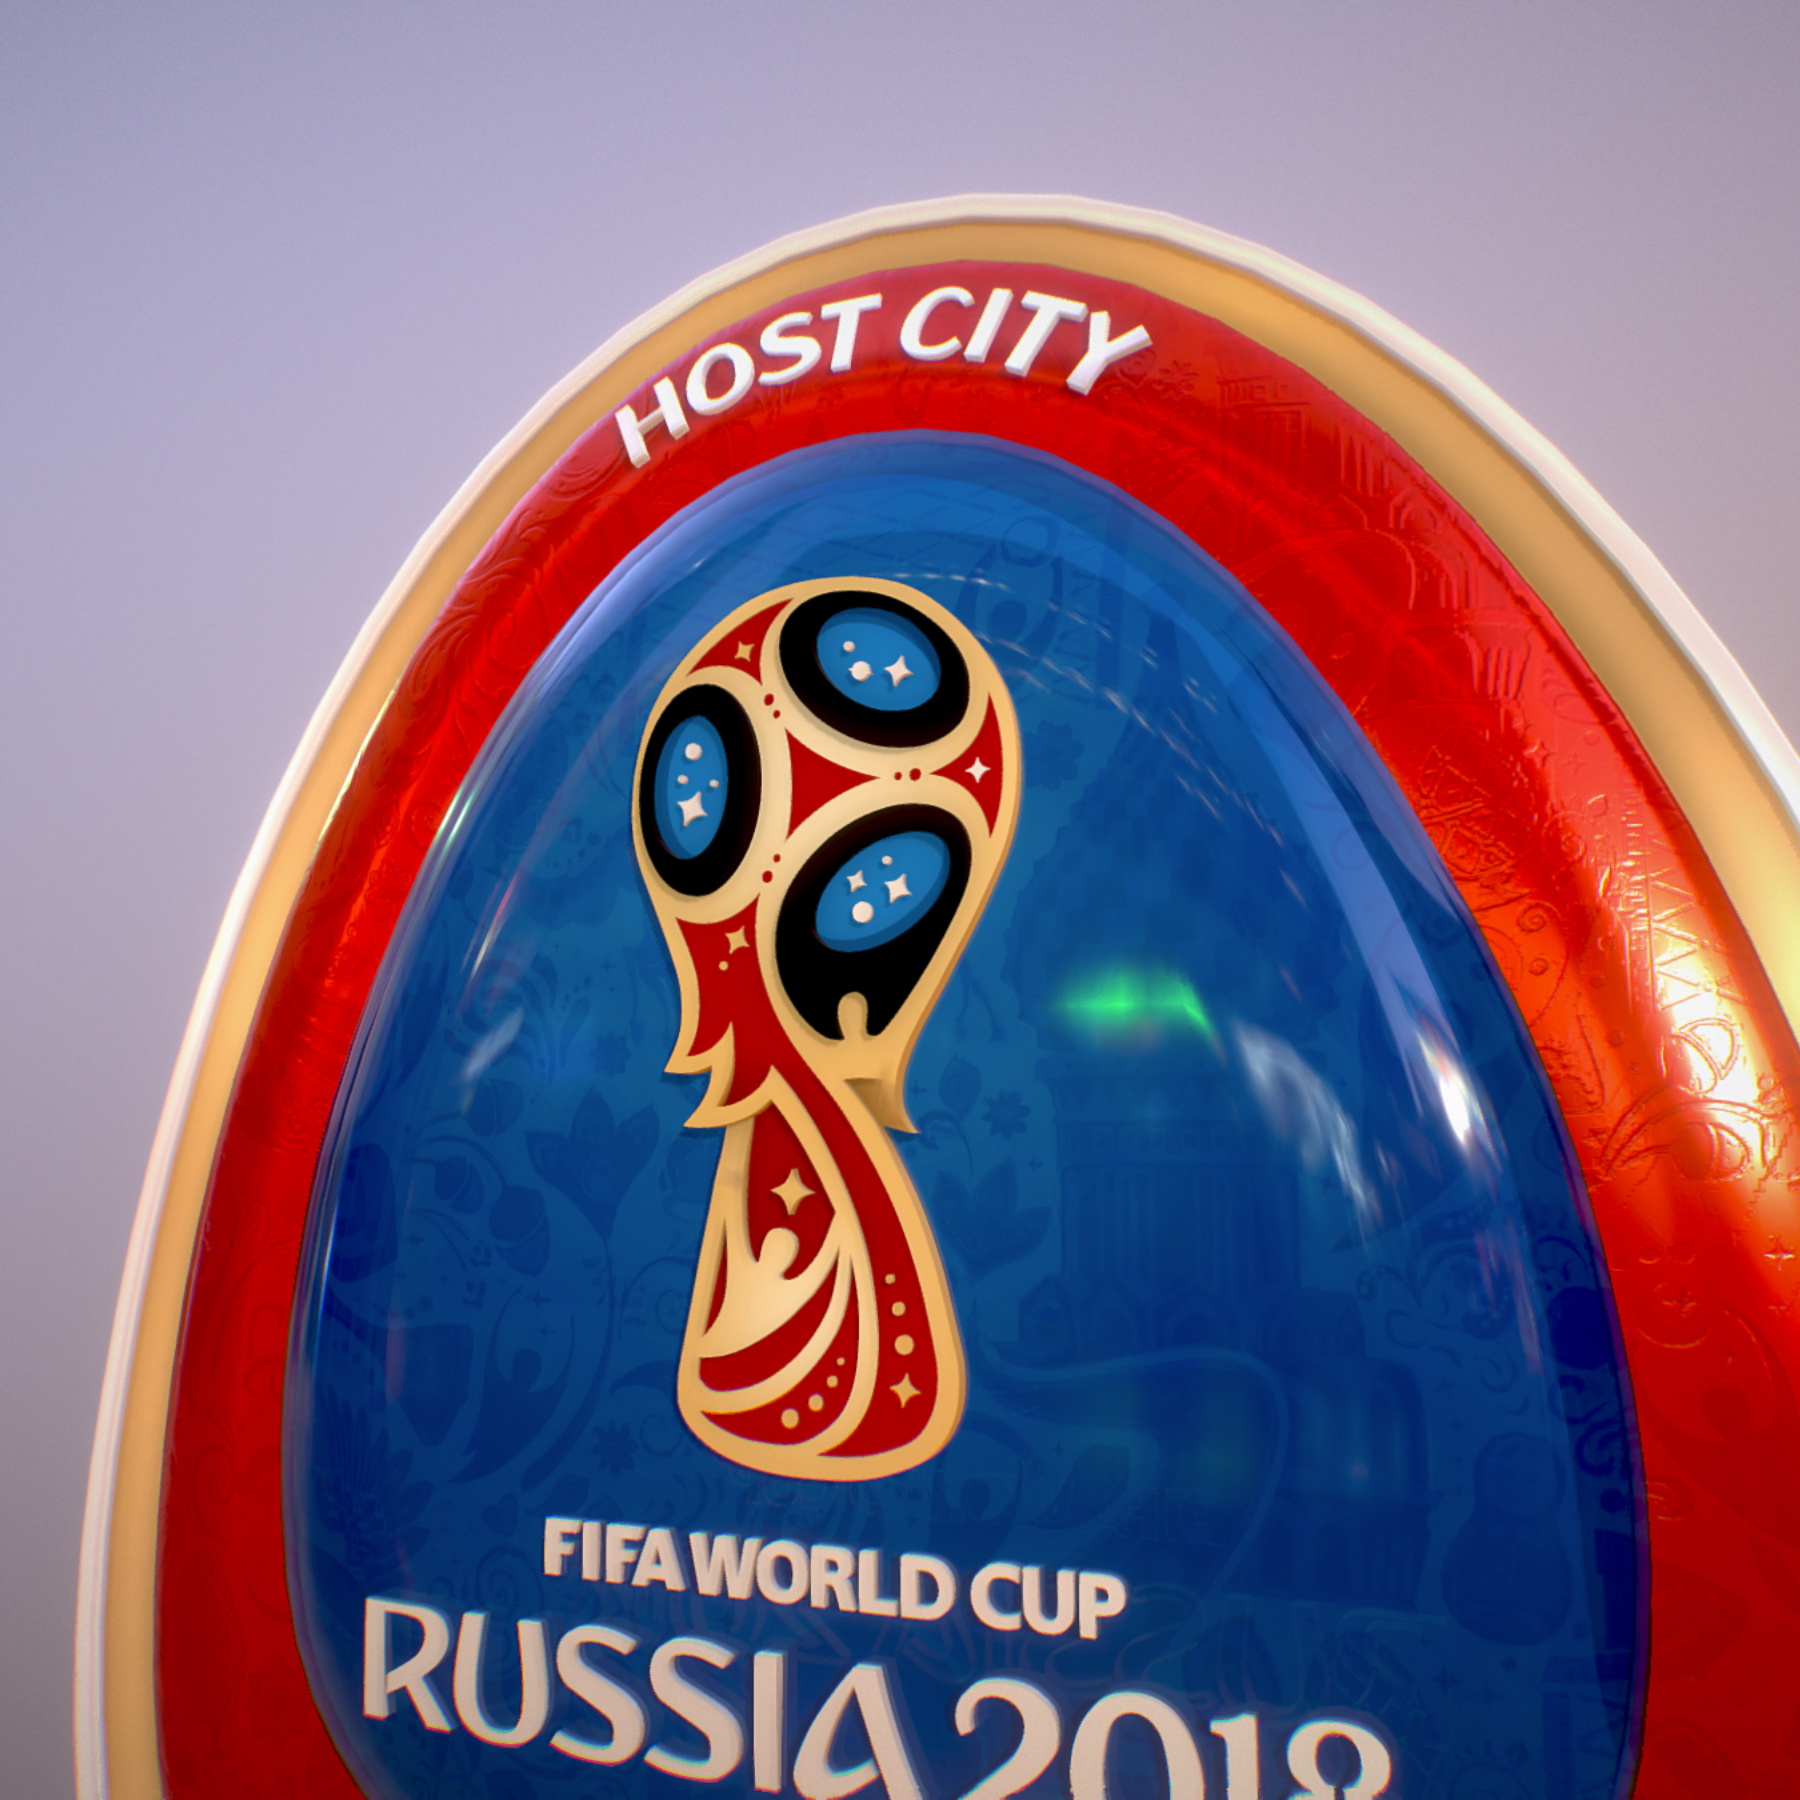 sochi host city world cup russia 2018 symbol 3d model max  fbx ma mb obj 271718